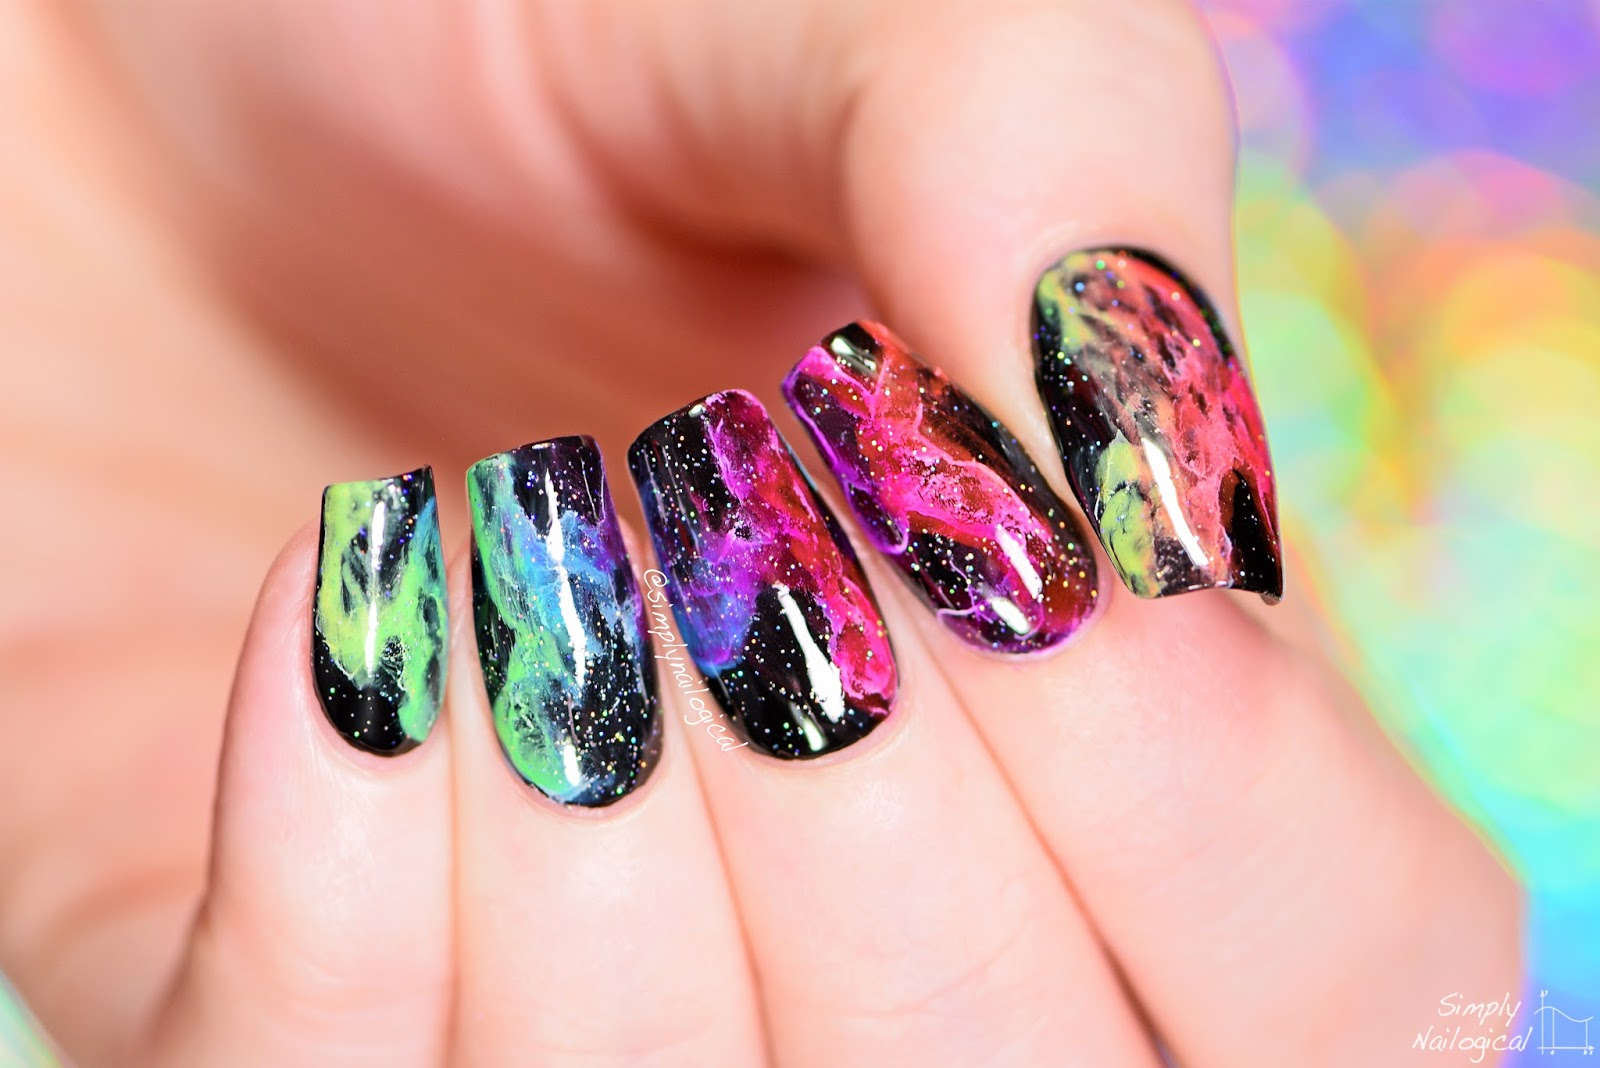 Simply Nailogical: Rainbow smoke nails | Mani swap with Elleandish!